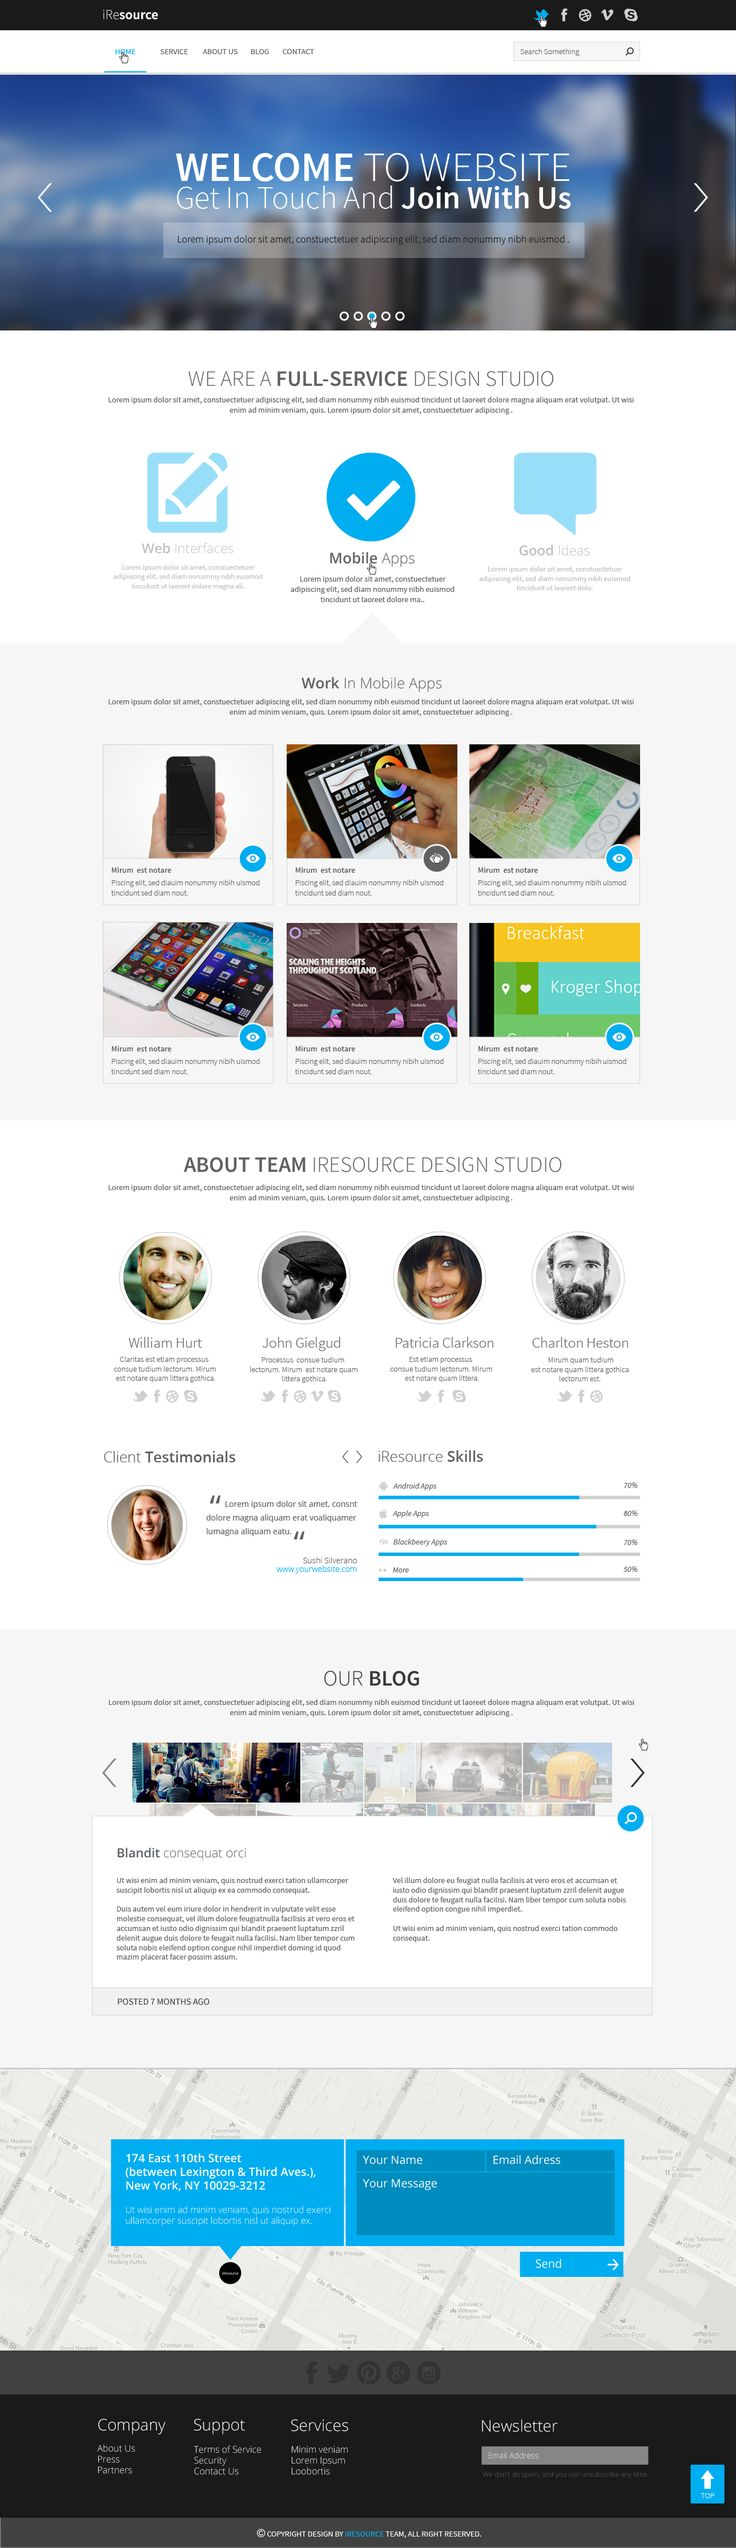 iResources - Creative One Page portfolio PSD Theme #webdesign #it #web #design #layout #userinterface #website #webdesign #design #webdesign #template #web #graphic #psd #photoshop #website #theme http://themeforest.net/item/iresources-creative-one-page-portfolio-psd-theme/4509723?ref=stephanus168